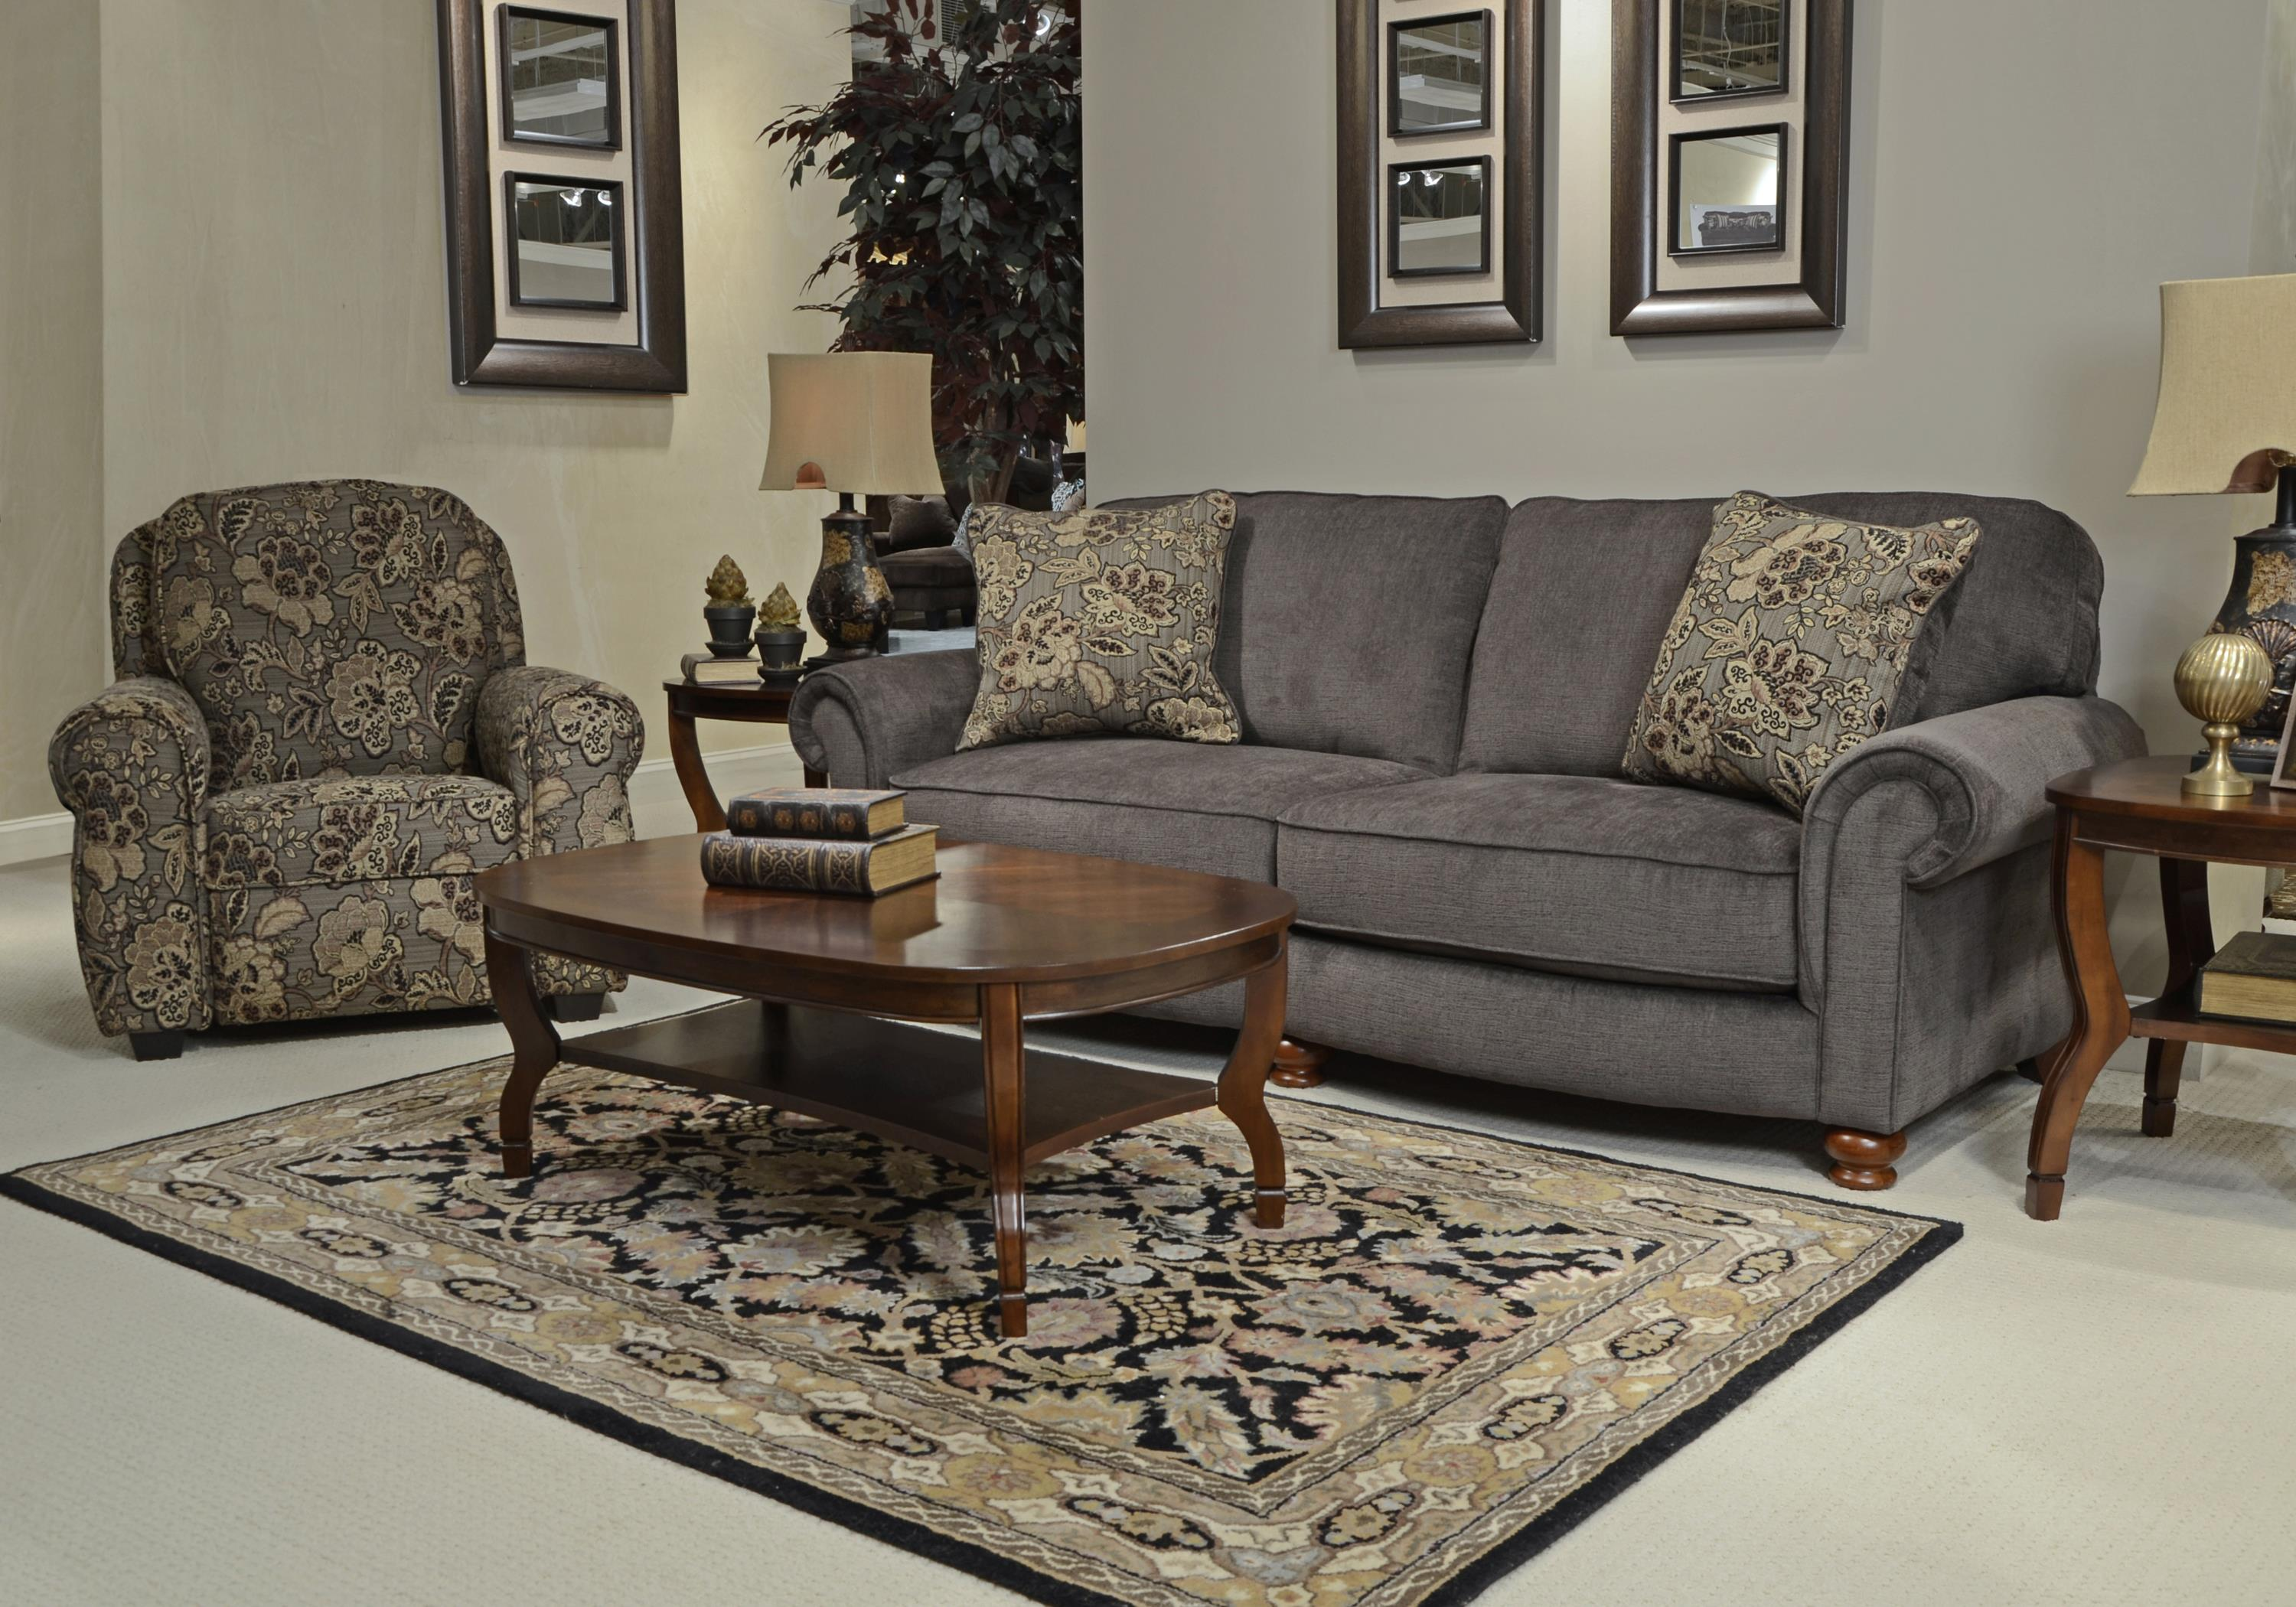 Jackson Furniture Downing Stationary Living Room Group   Item Number: 4384 Living  Room Group 1